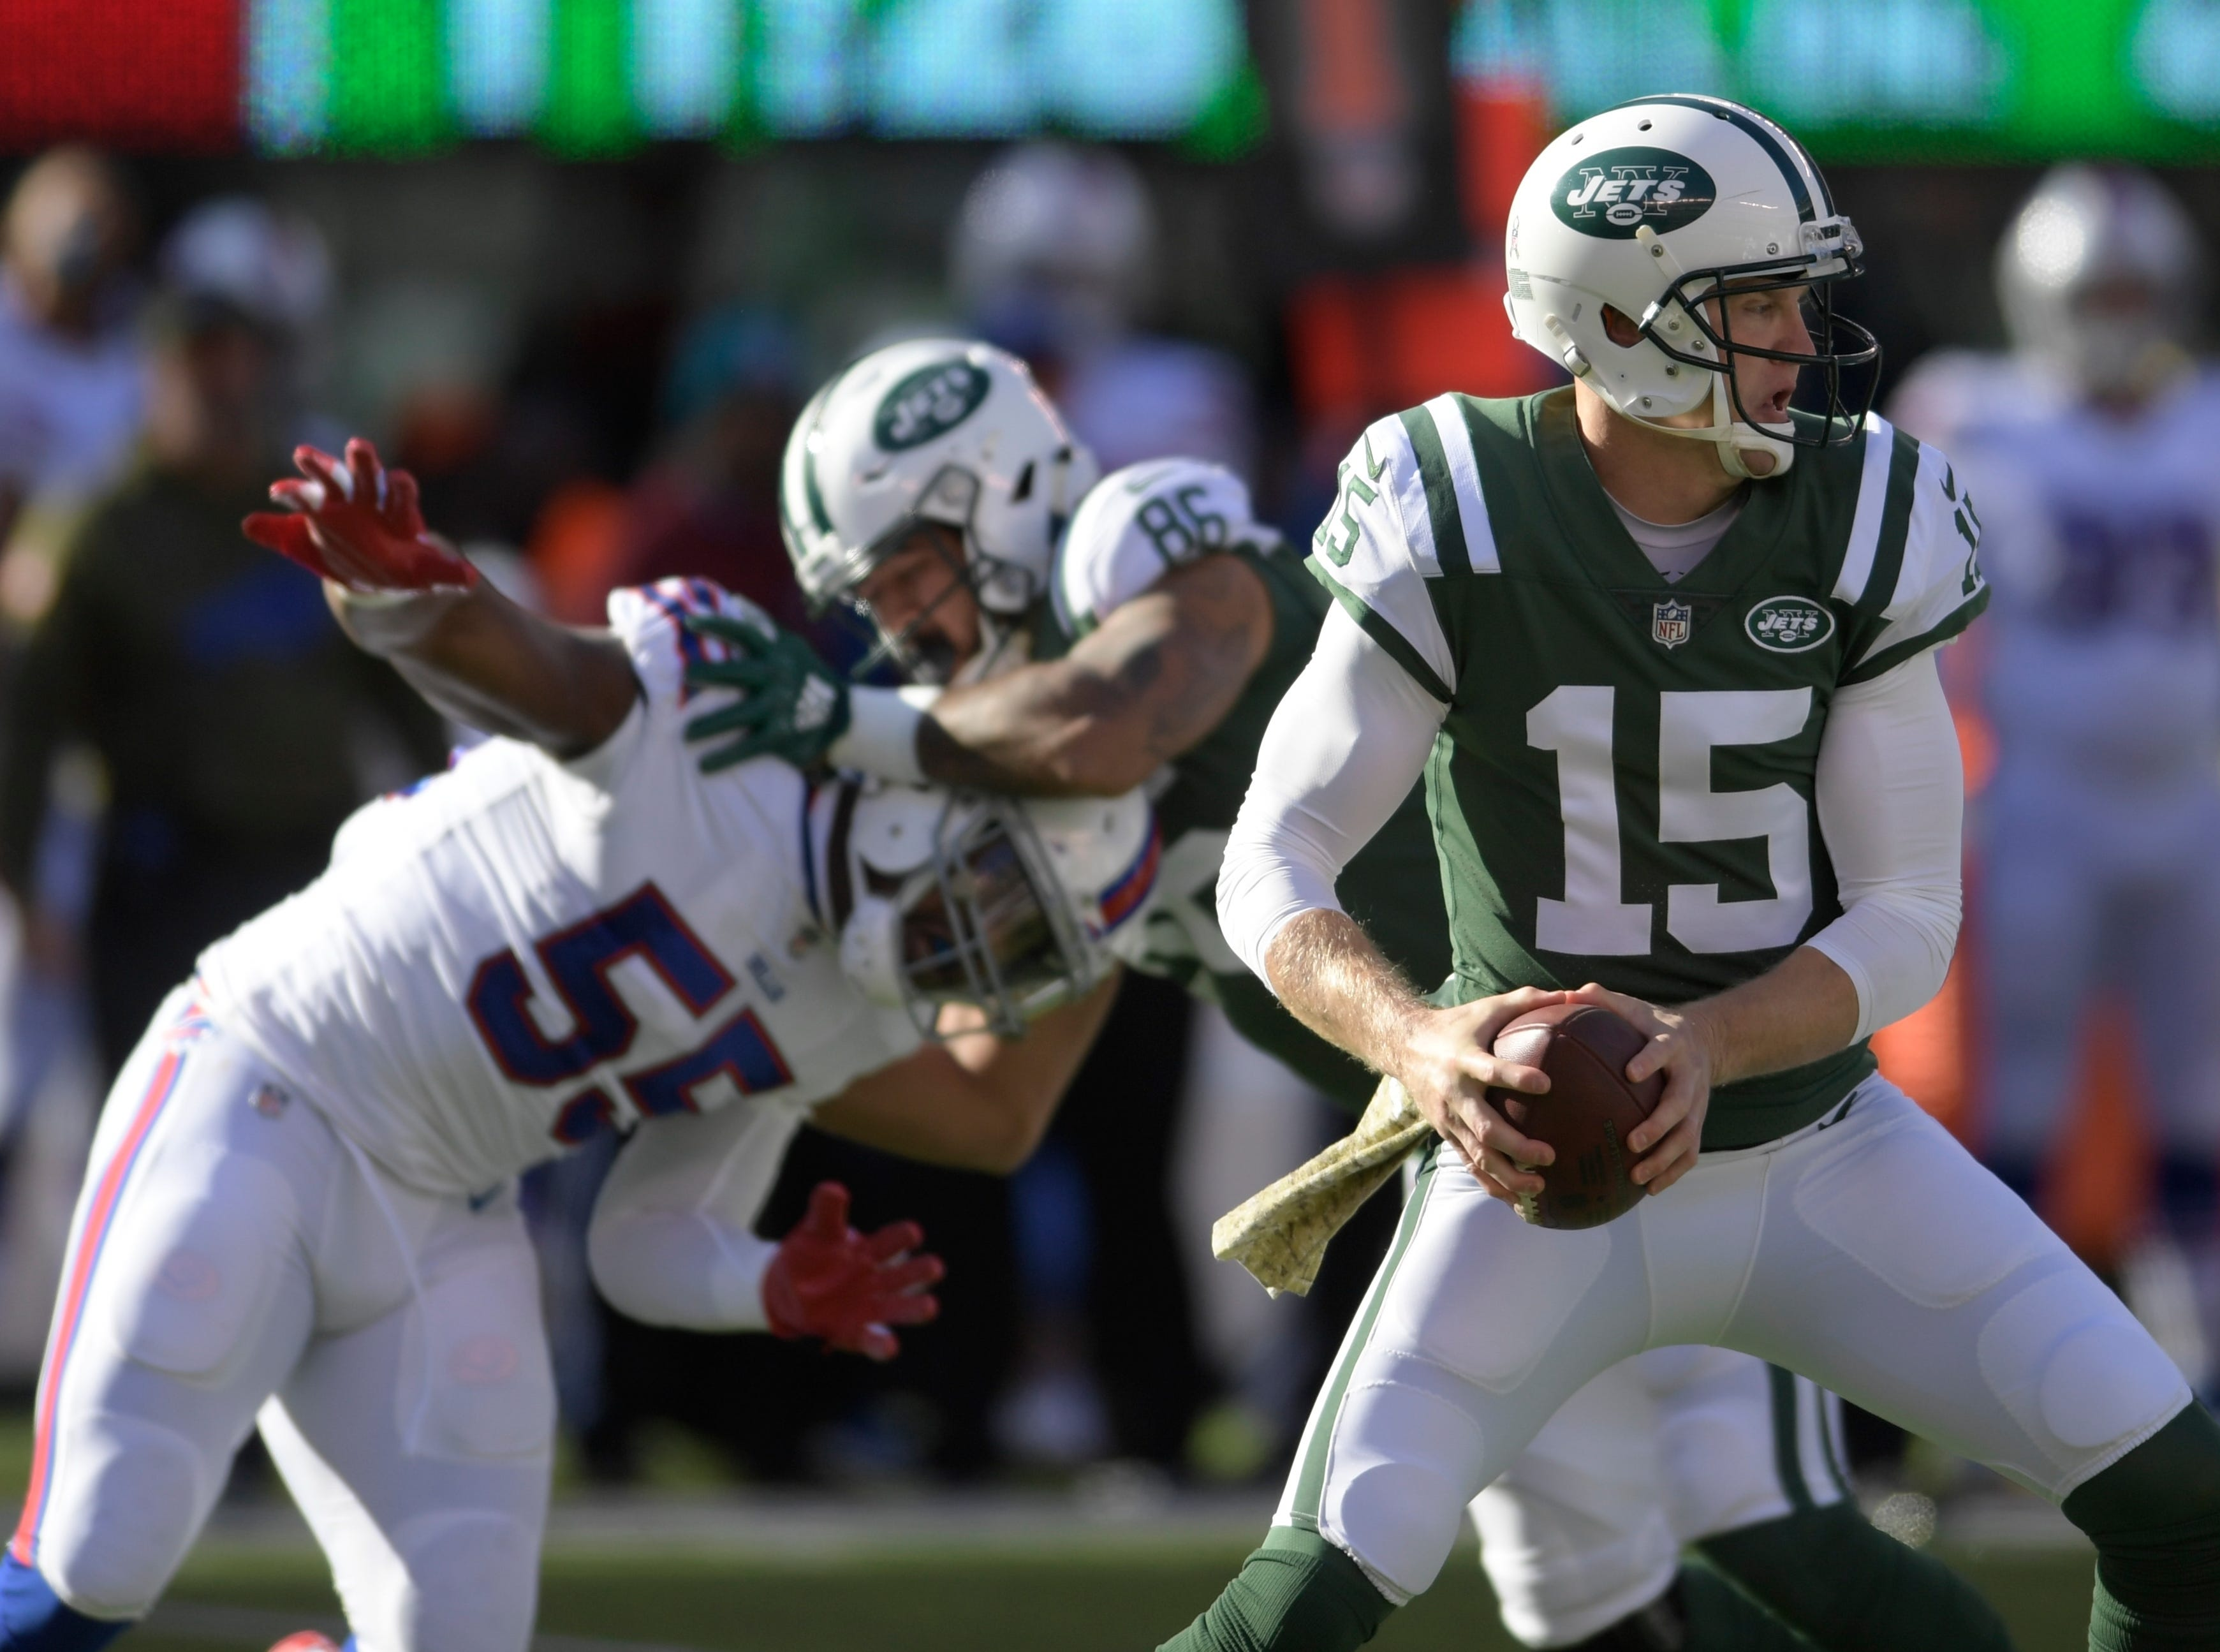 New York Jets quarterback Josh McCown (15) rolls out of the pocket during the first quarter of an NFL football game against the Buffalo Bills, Sunday, Nov. 11, 2018, in East Rutherford, N.J. (AP Photo/Bill Kostroun)